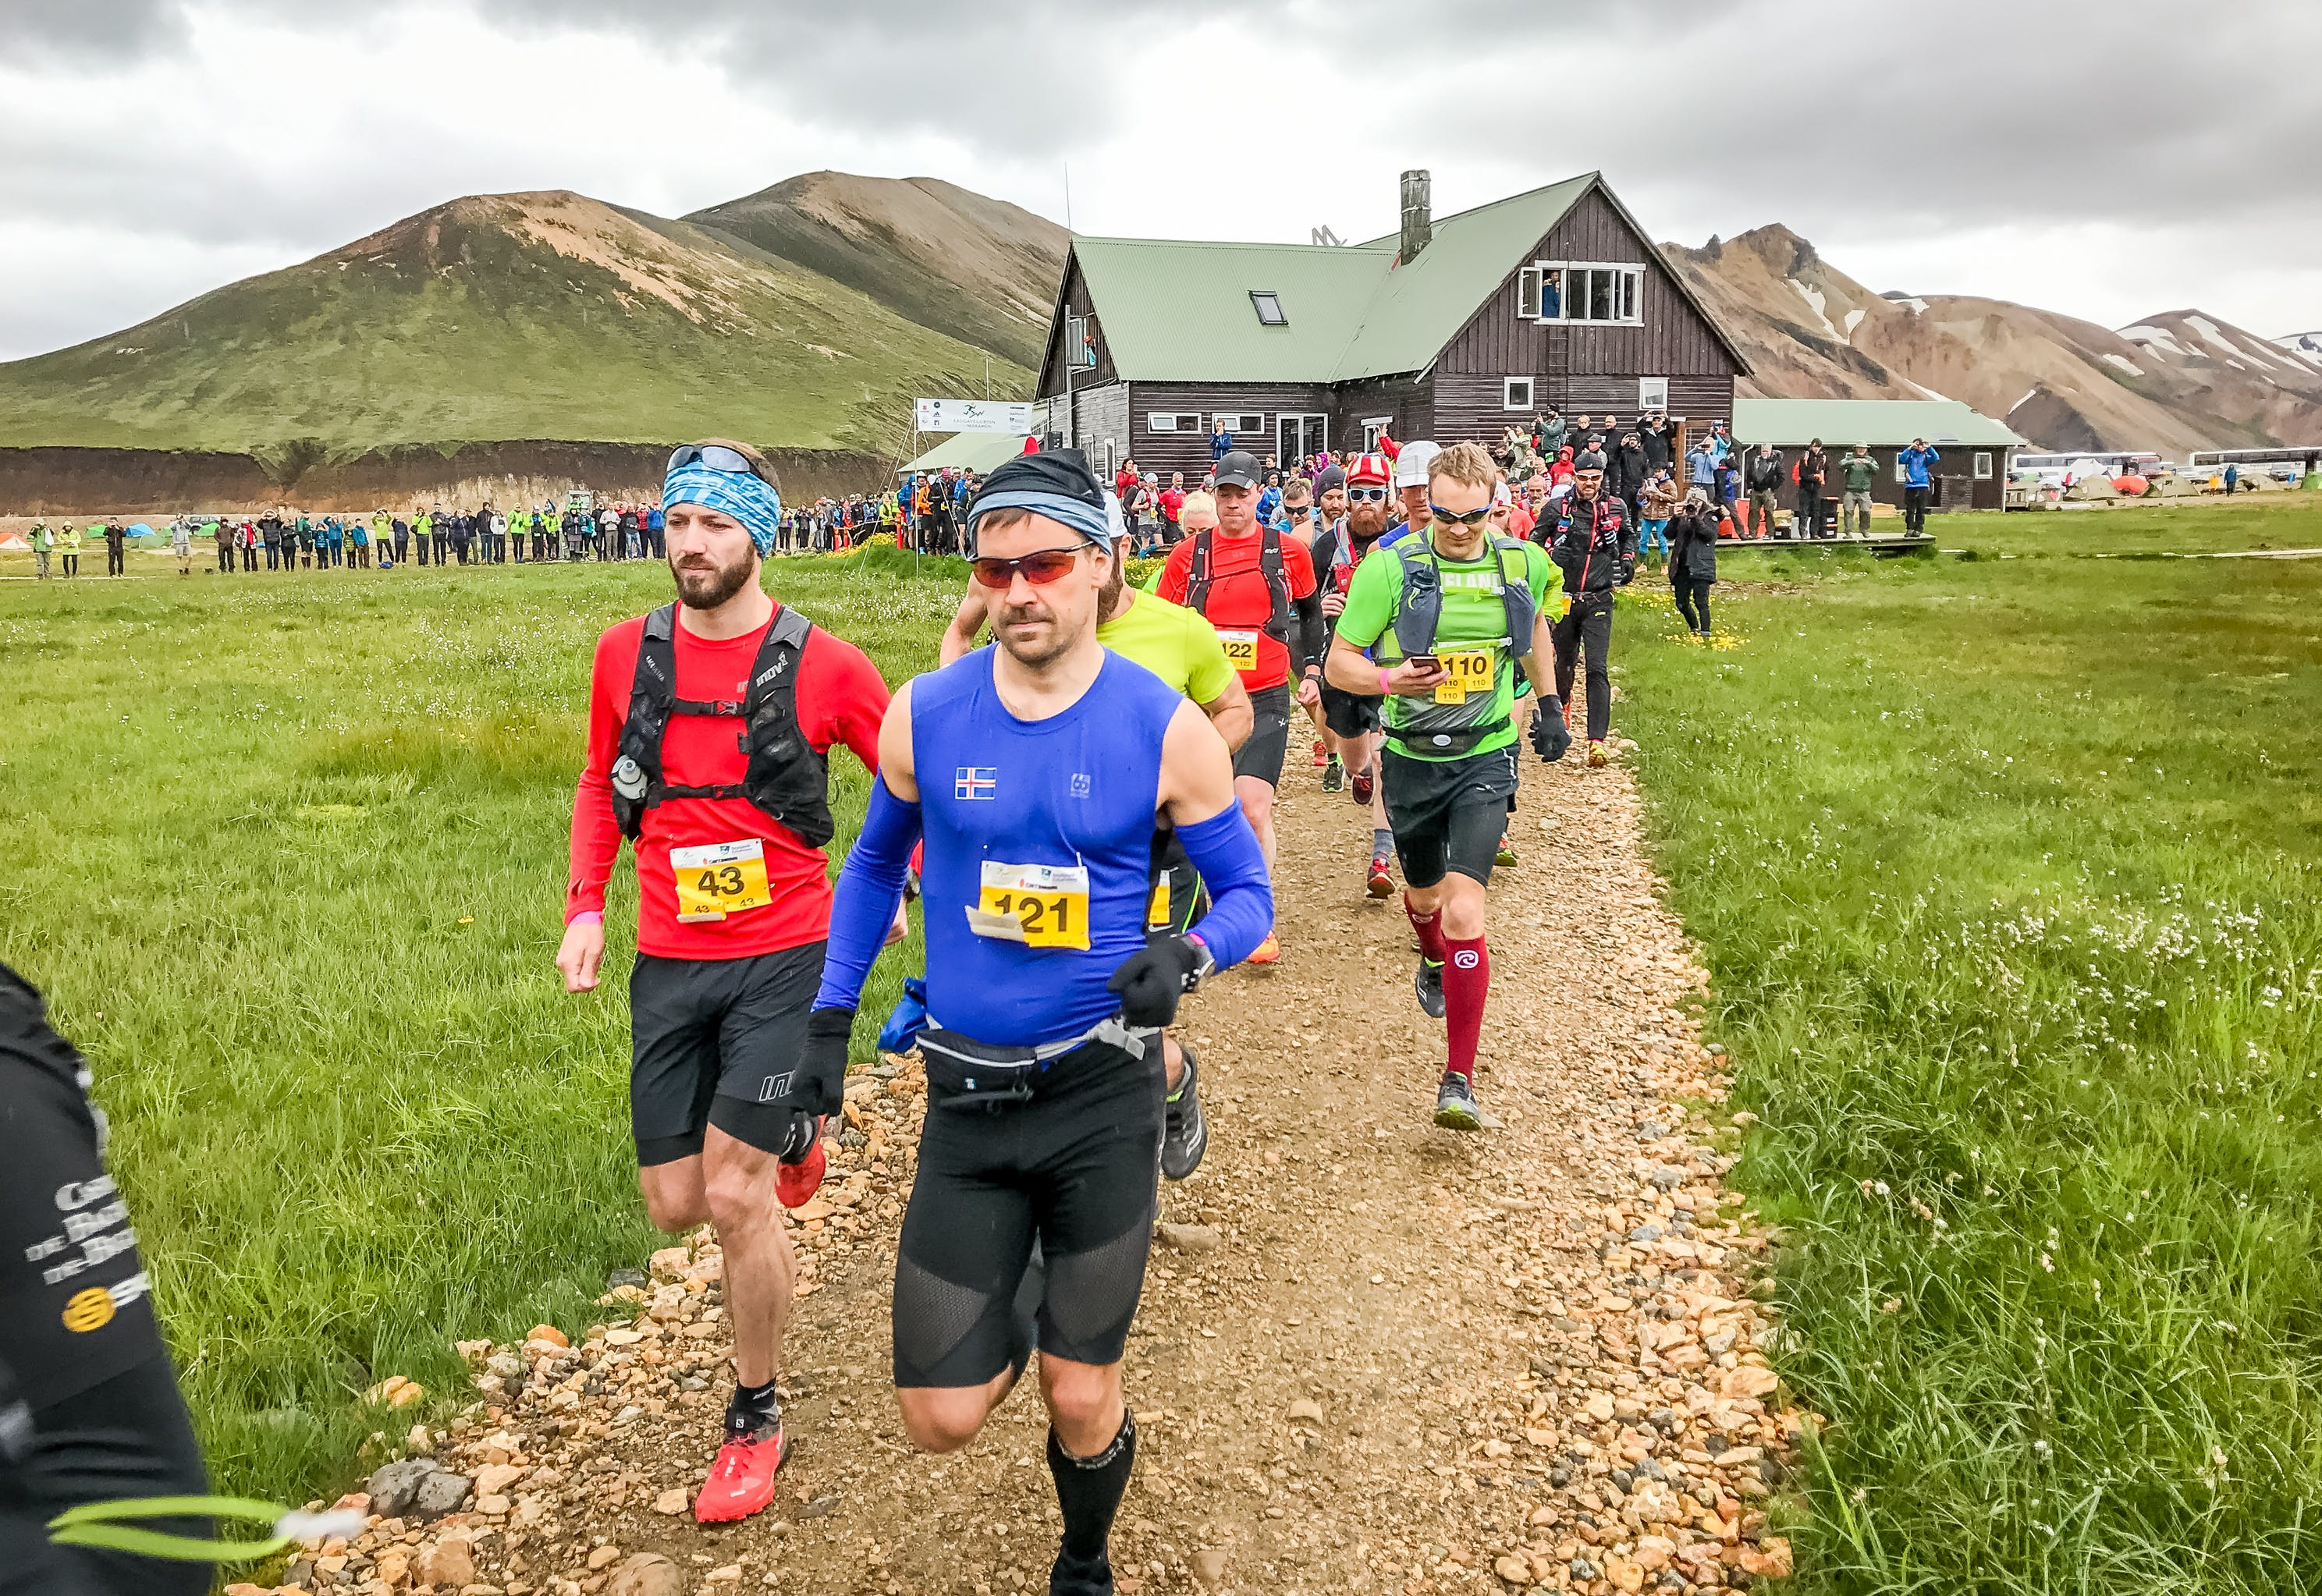 Runners starting the race in Landmannalaugar